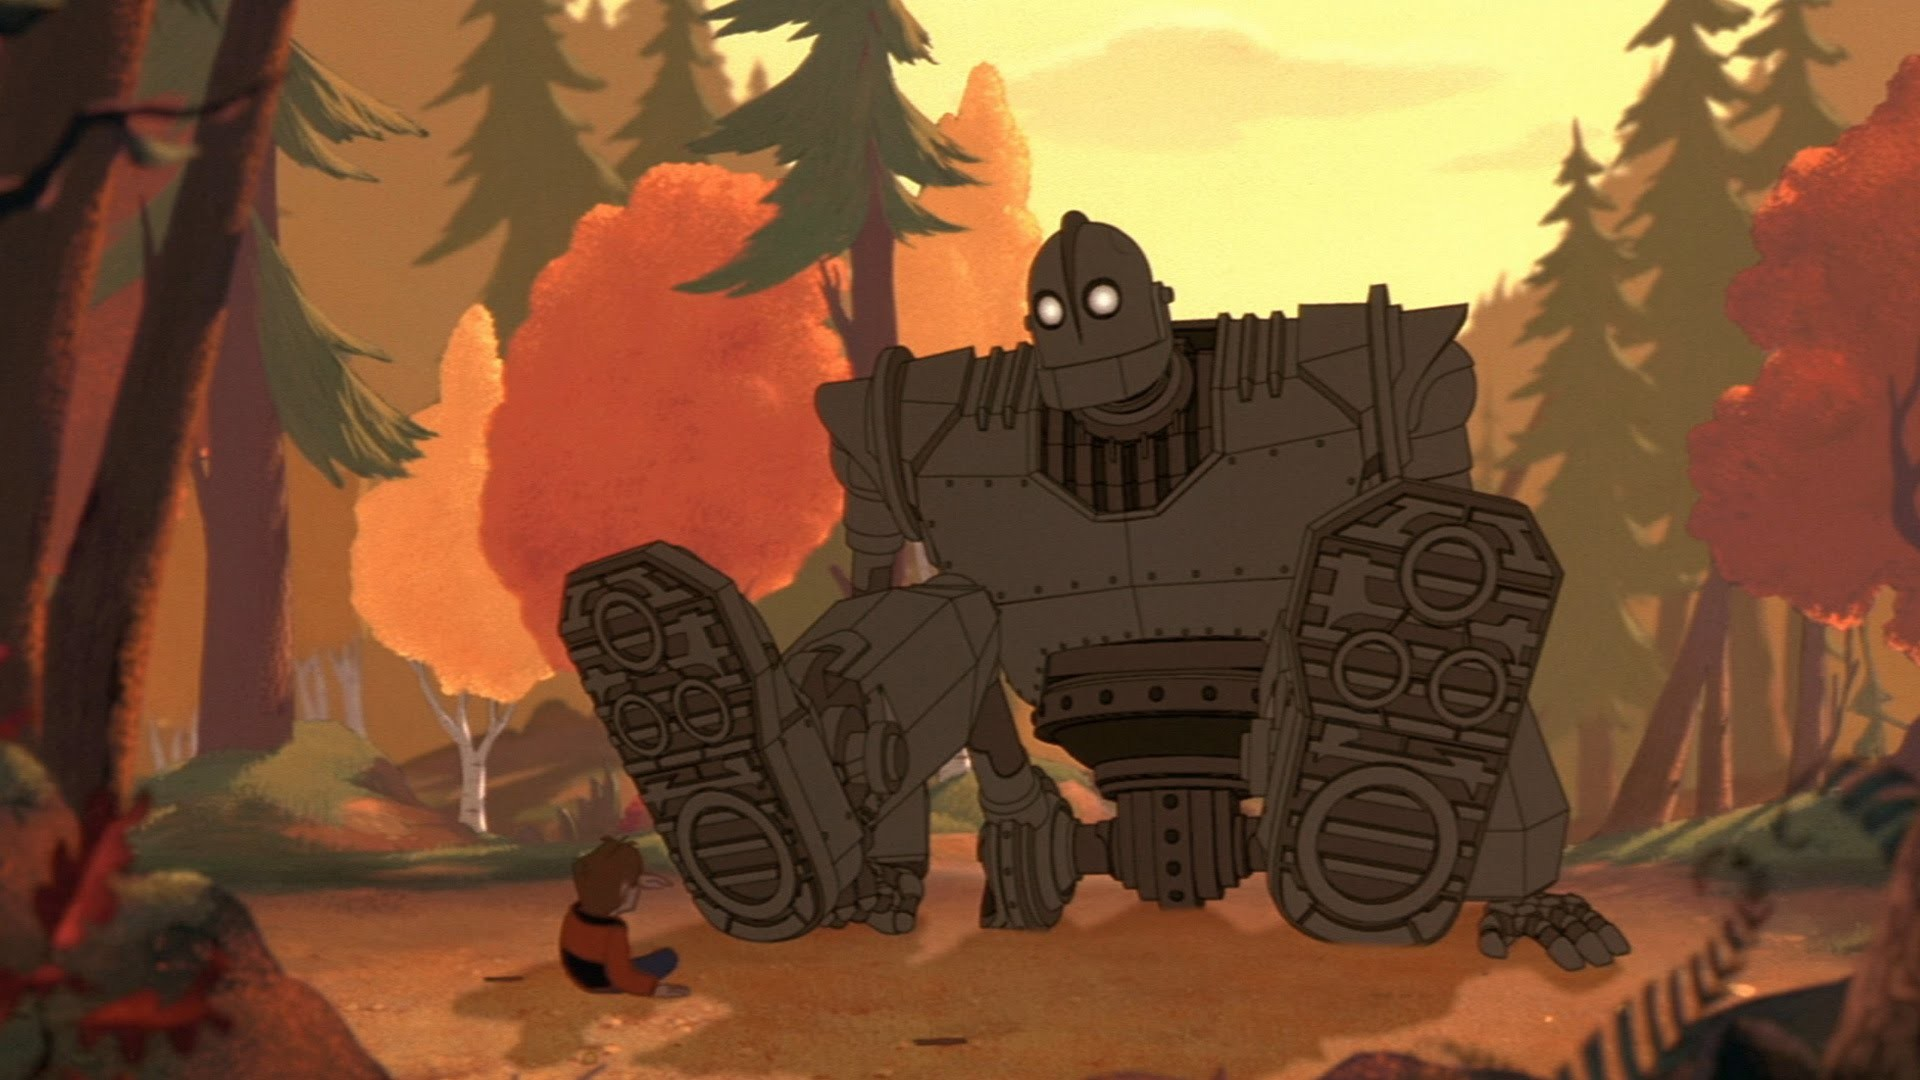 'The Iron Giant: Signature Edition' Trailer